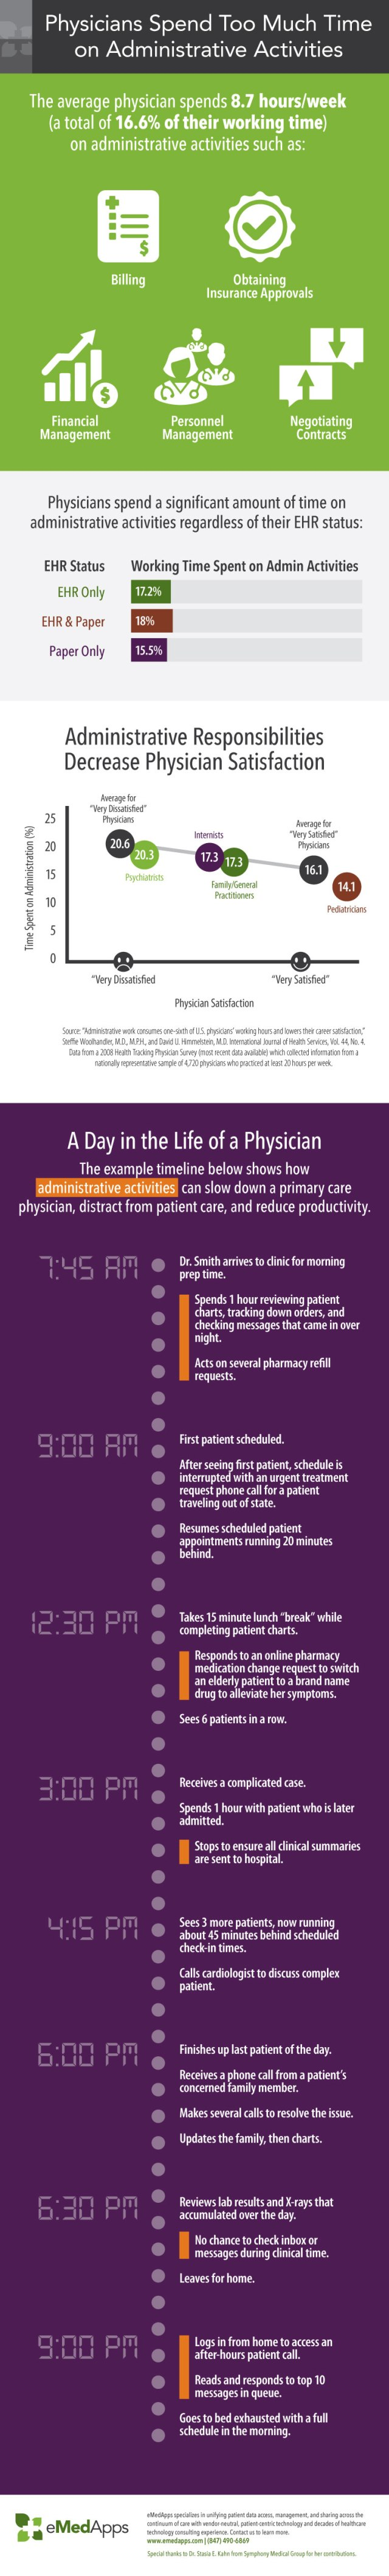 Physician EHR Burnout and Administration Tasks - eMedApps